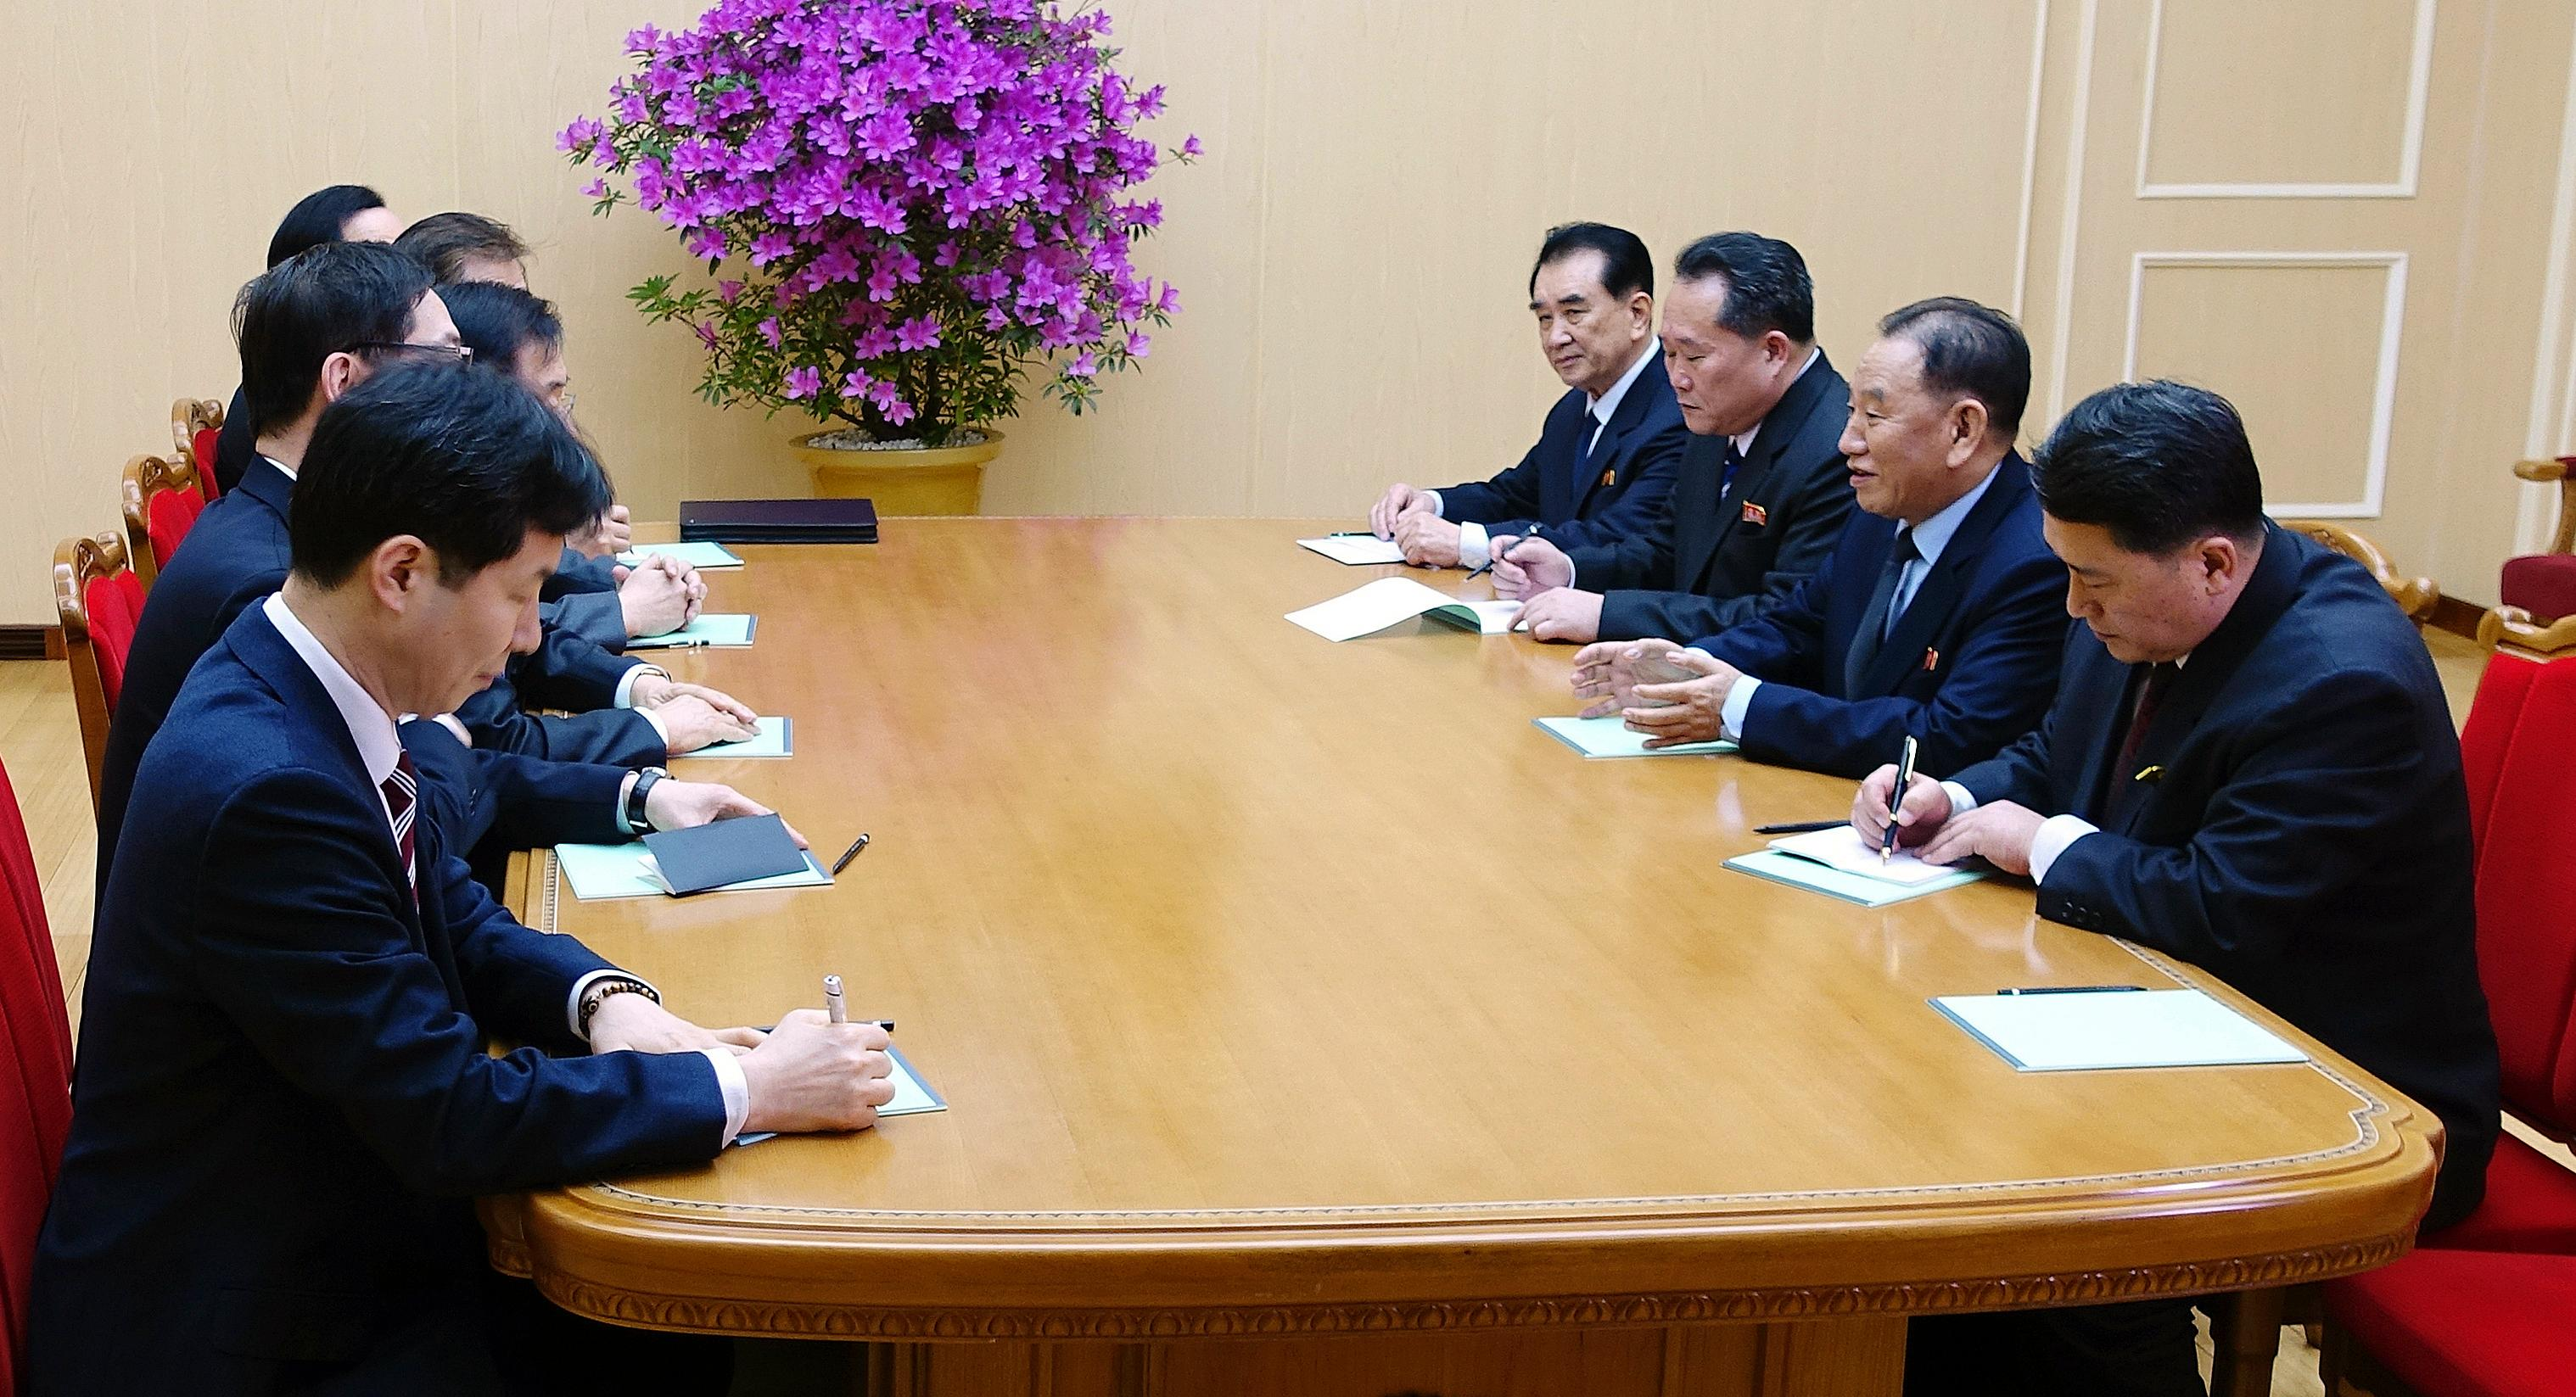 In this photo provided by South Korea Presidential Blue House via Yonhap News Agency, Kim Yong Chol, vice chairman of North Korea's ruling Workers' Party Central Committee, second from right, talks with South Korean delegation in Pyongyang, North Korea, Monday, March 5, 2018.  Envoys for South Korean President Moon Jae-in, led by Moon's national security director, Chung Eui-yong, are on a rare two-day visit to Pyongyang that's expected to focus on how to ease a standoff over North Korea's nuclear ambitions and restart talks between Pyongyang and Washington. (South Korea Presidential Blue House/Yonhap via AP)